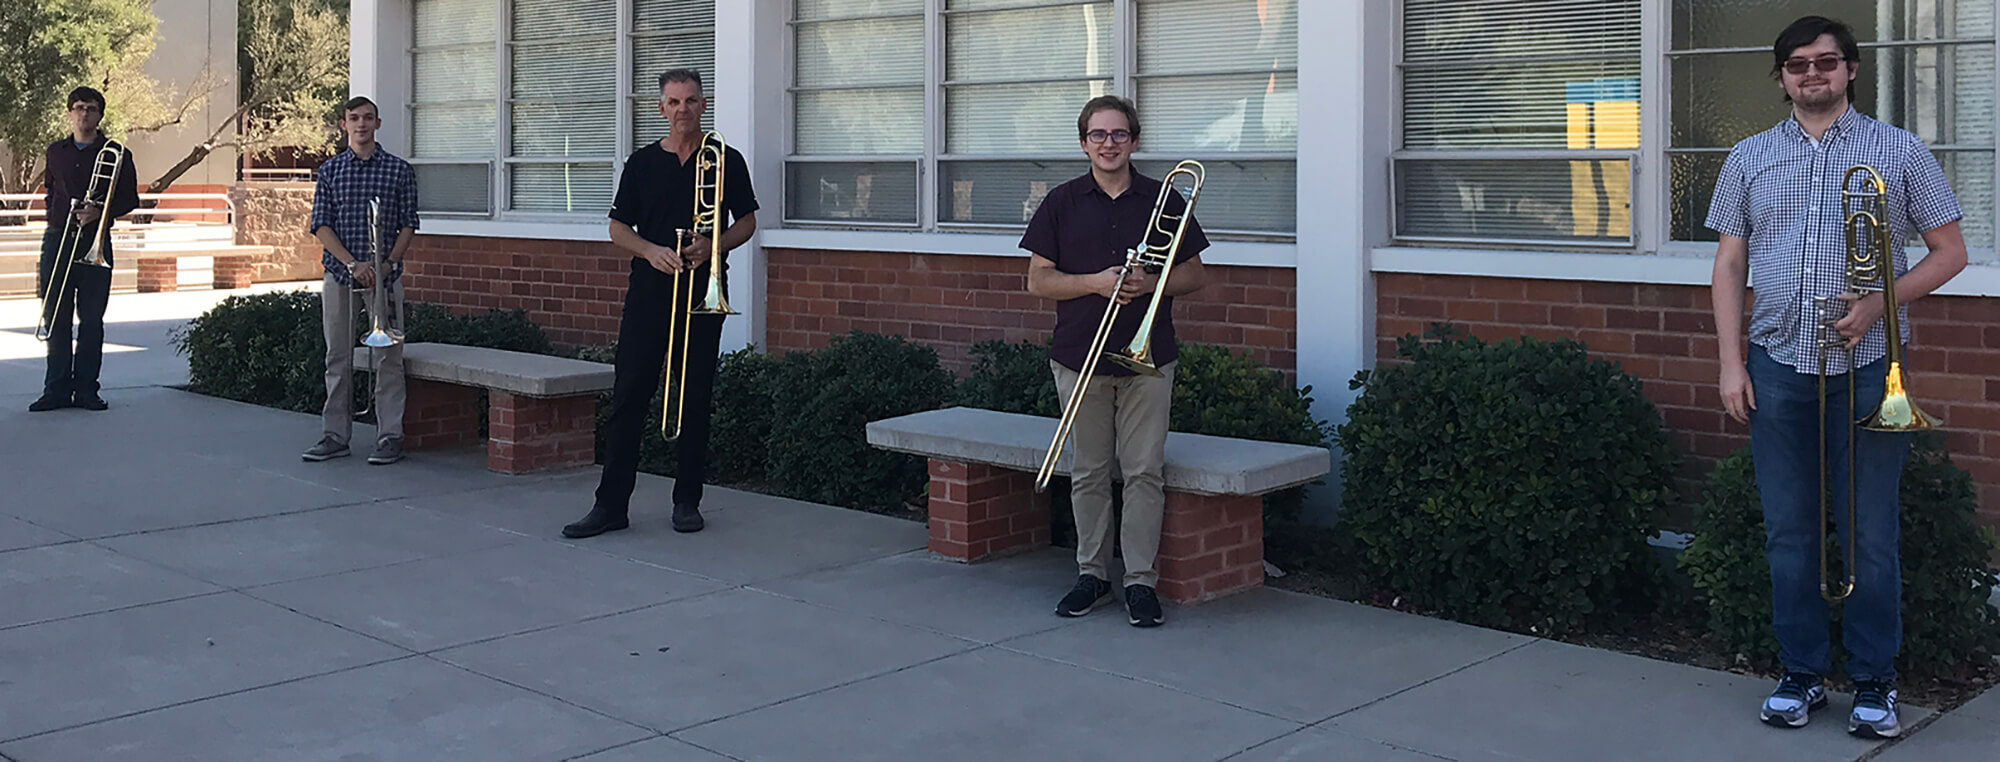 Photo of Trombone Studio students and instructor in front of the Fred Fox School of Music building